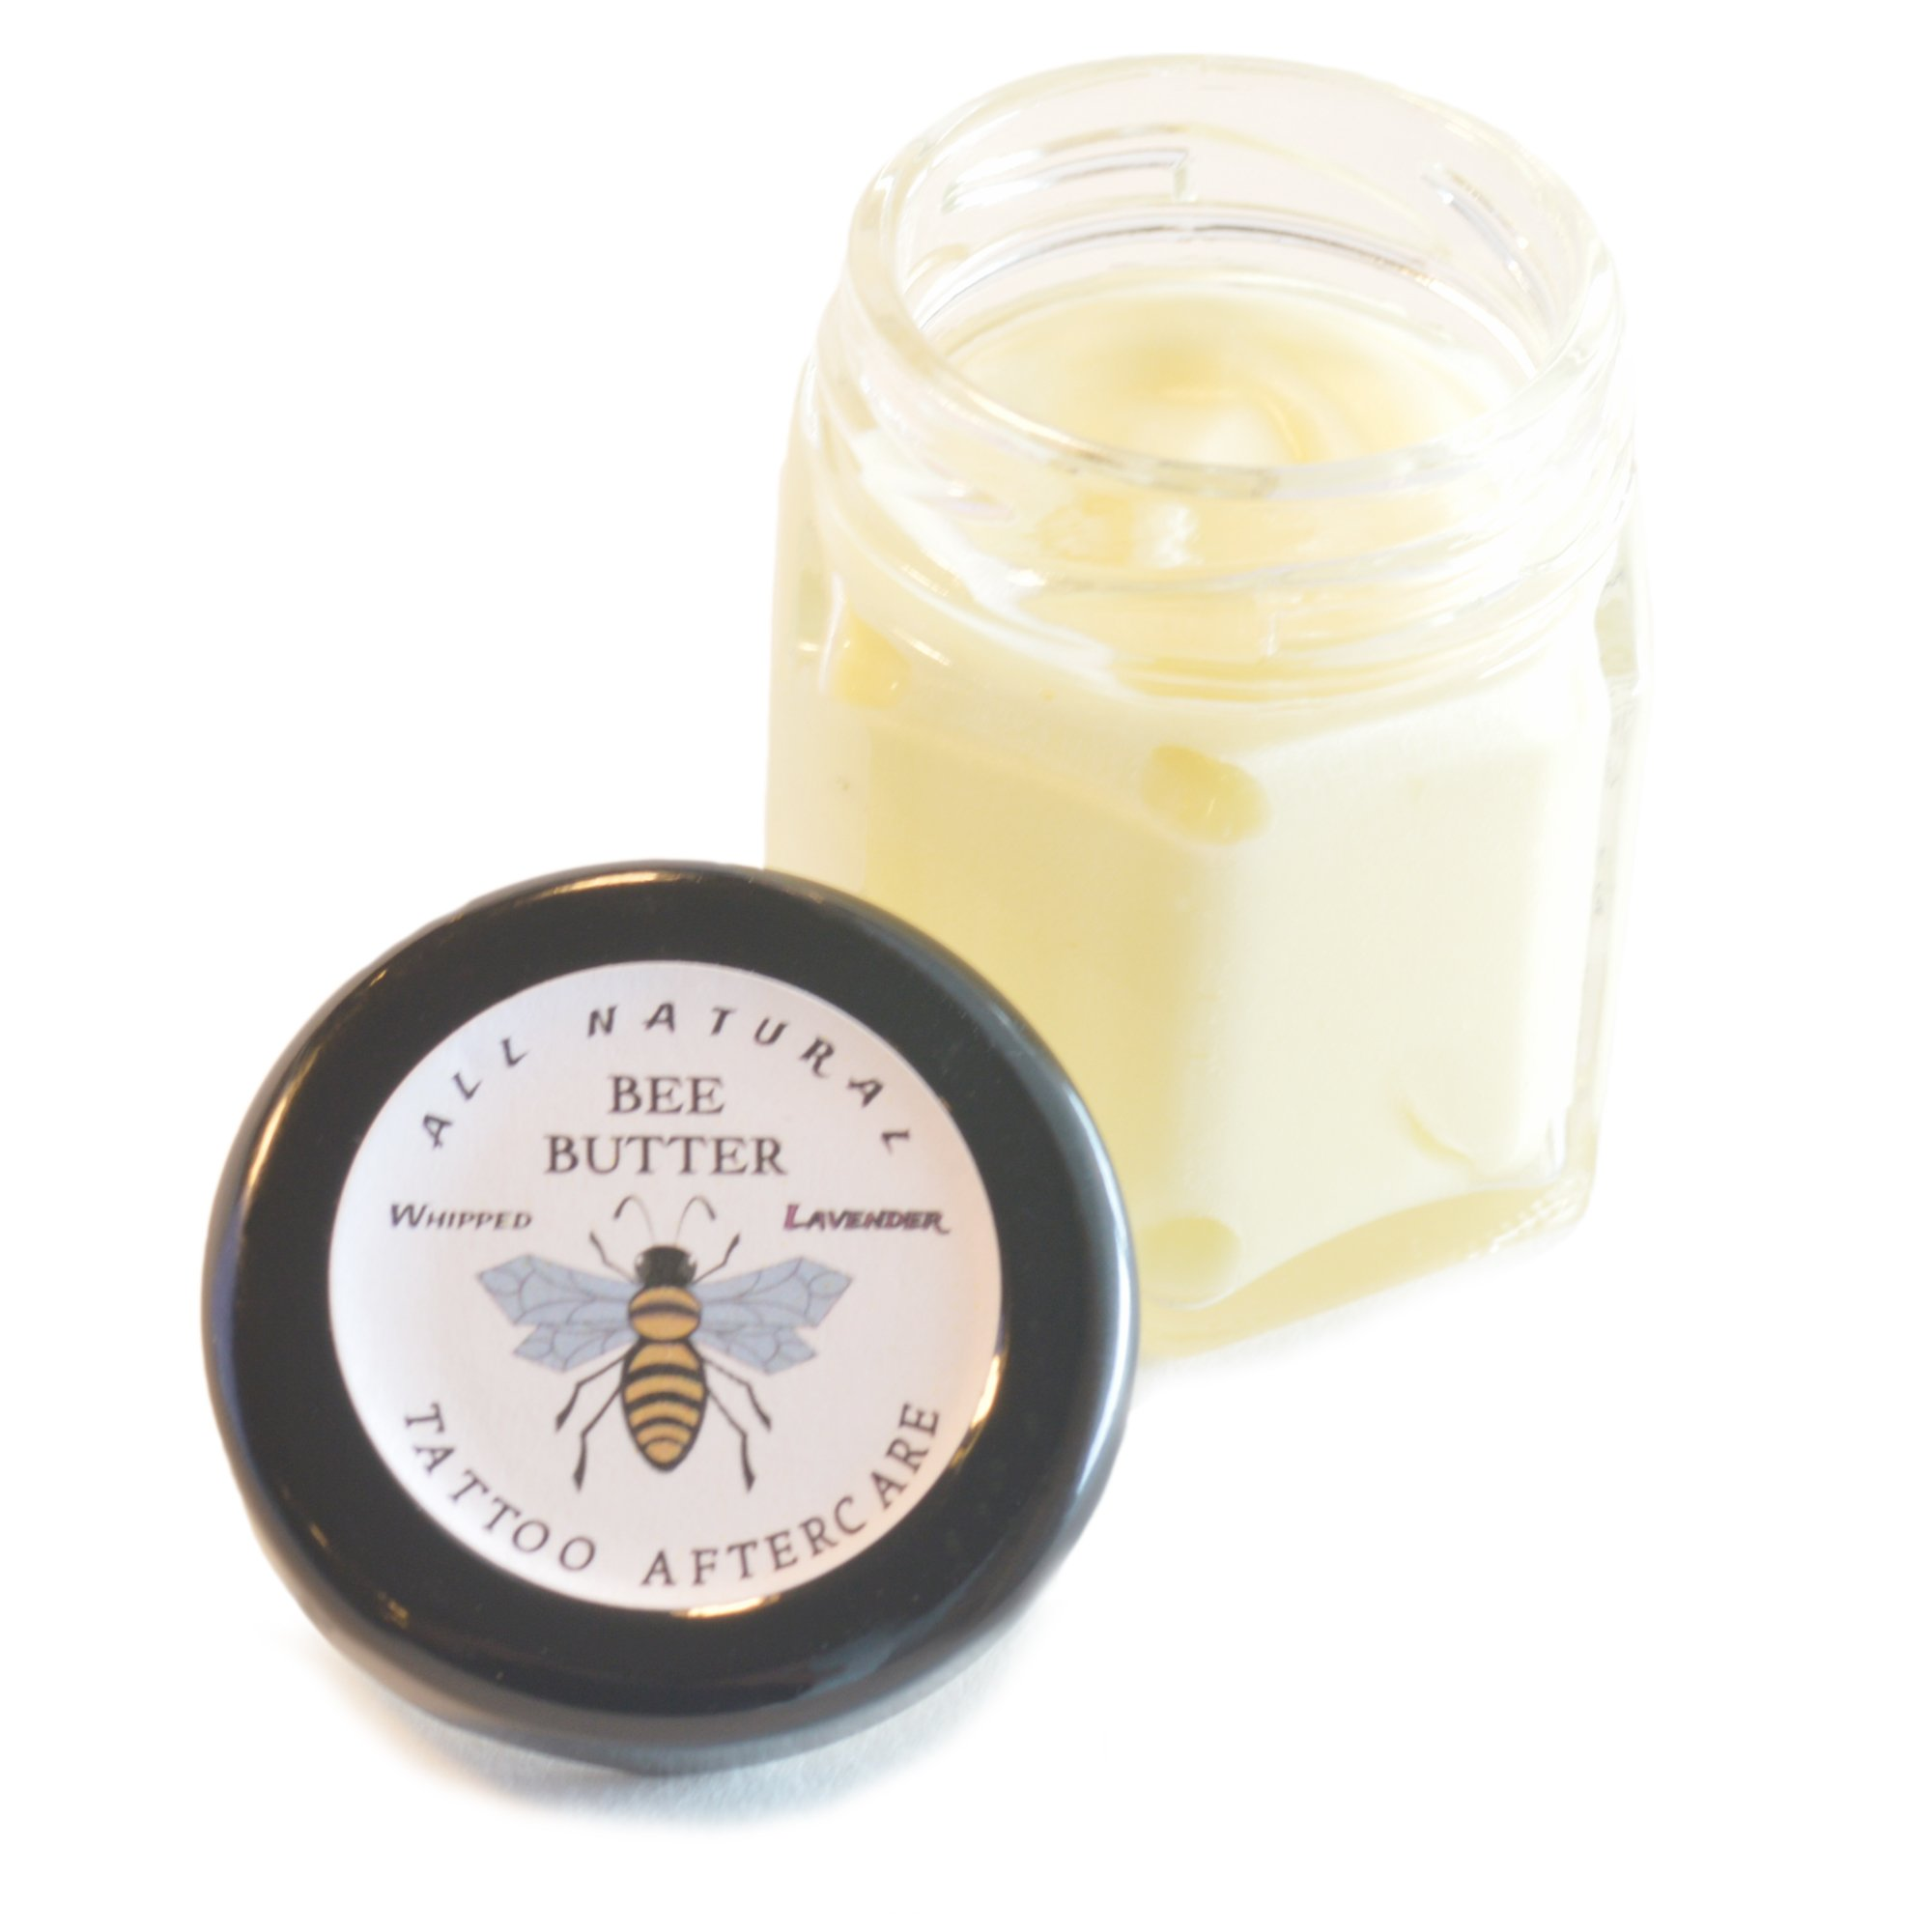 All Natural Bee Butter - 100% Natural Ingredients and it smells amazing!. Get Lavender, Vanilla-Pear, Lemon-Grass or Unscented. 1.5 oz. glass jar. (Vanilla Pear)